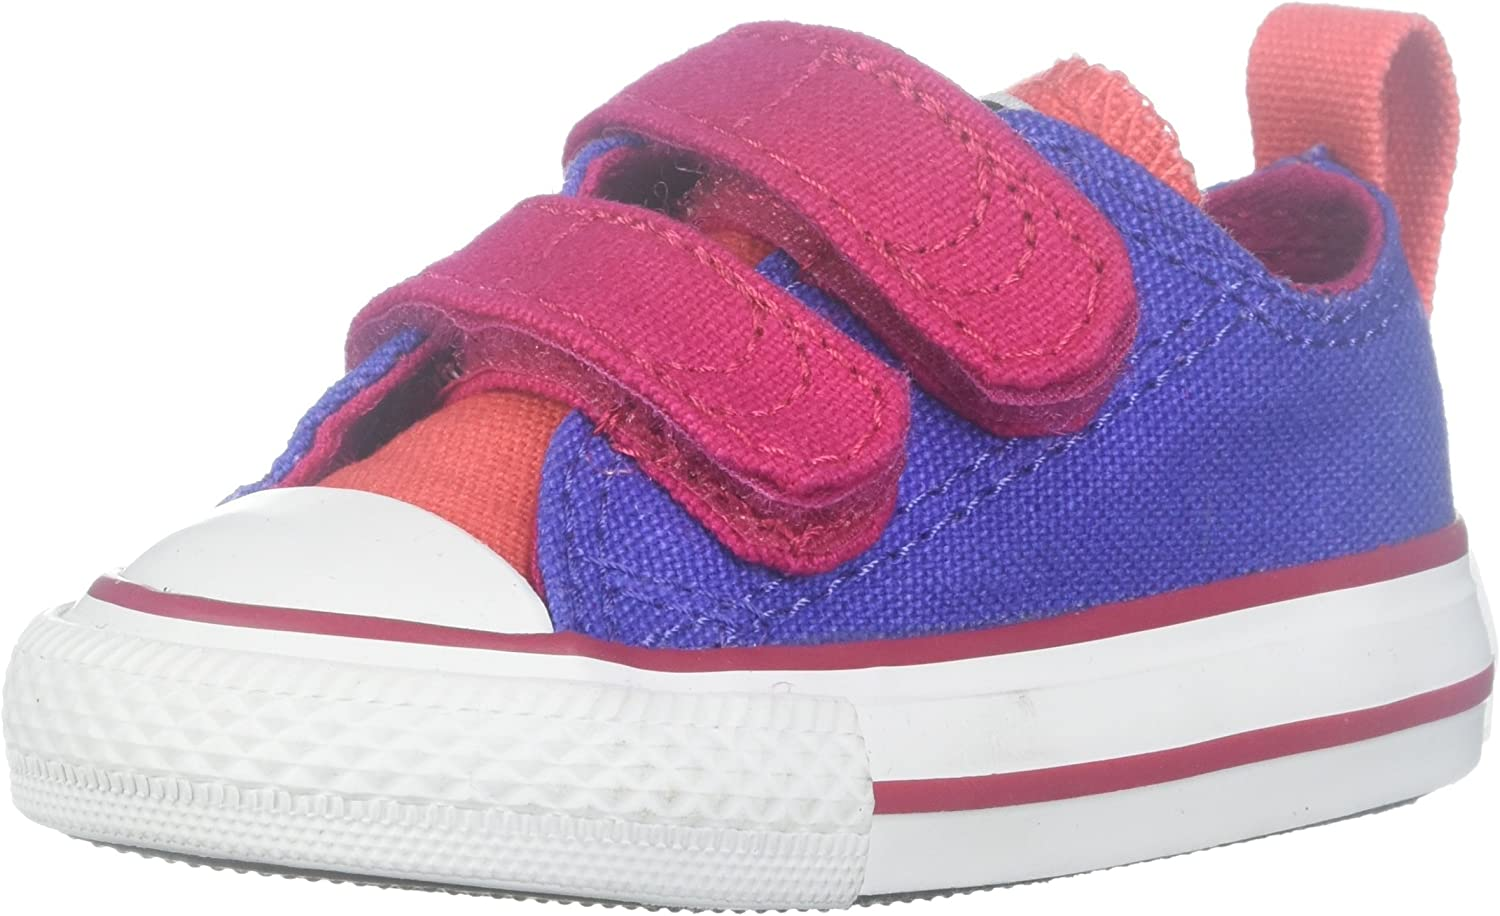 Converse Girls' Chuck Taylor All Star Inf Periwink Ox 2V - Tod Some reservation Max 70% OFF